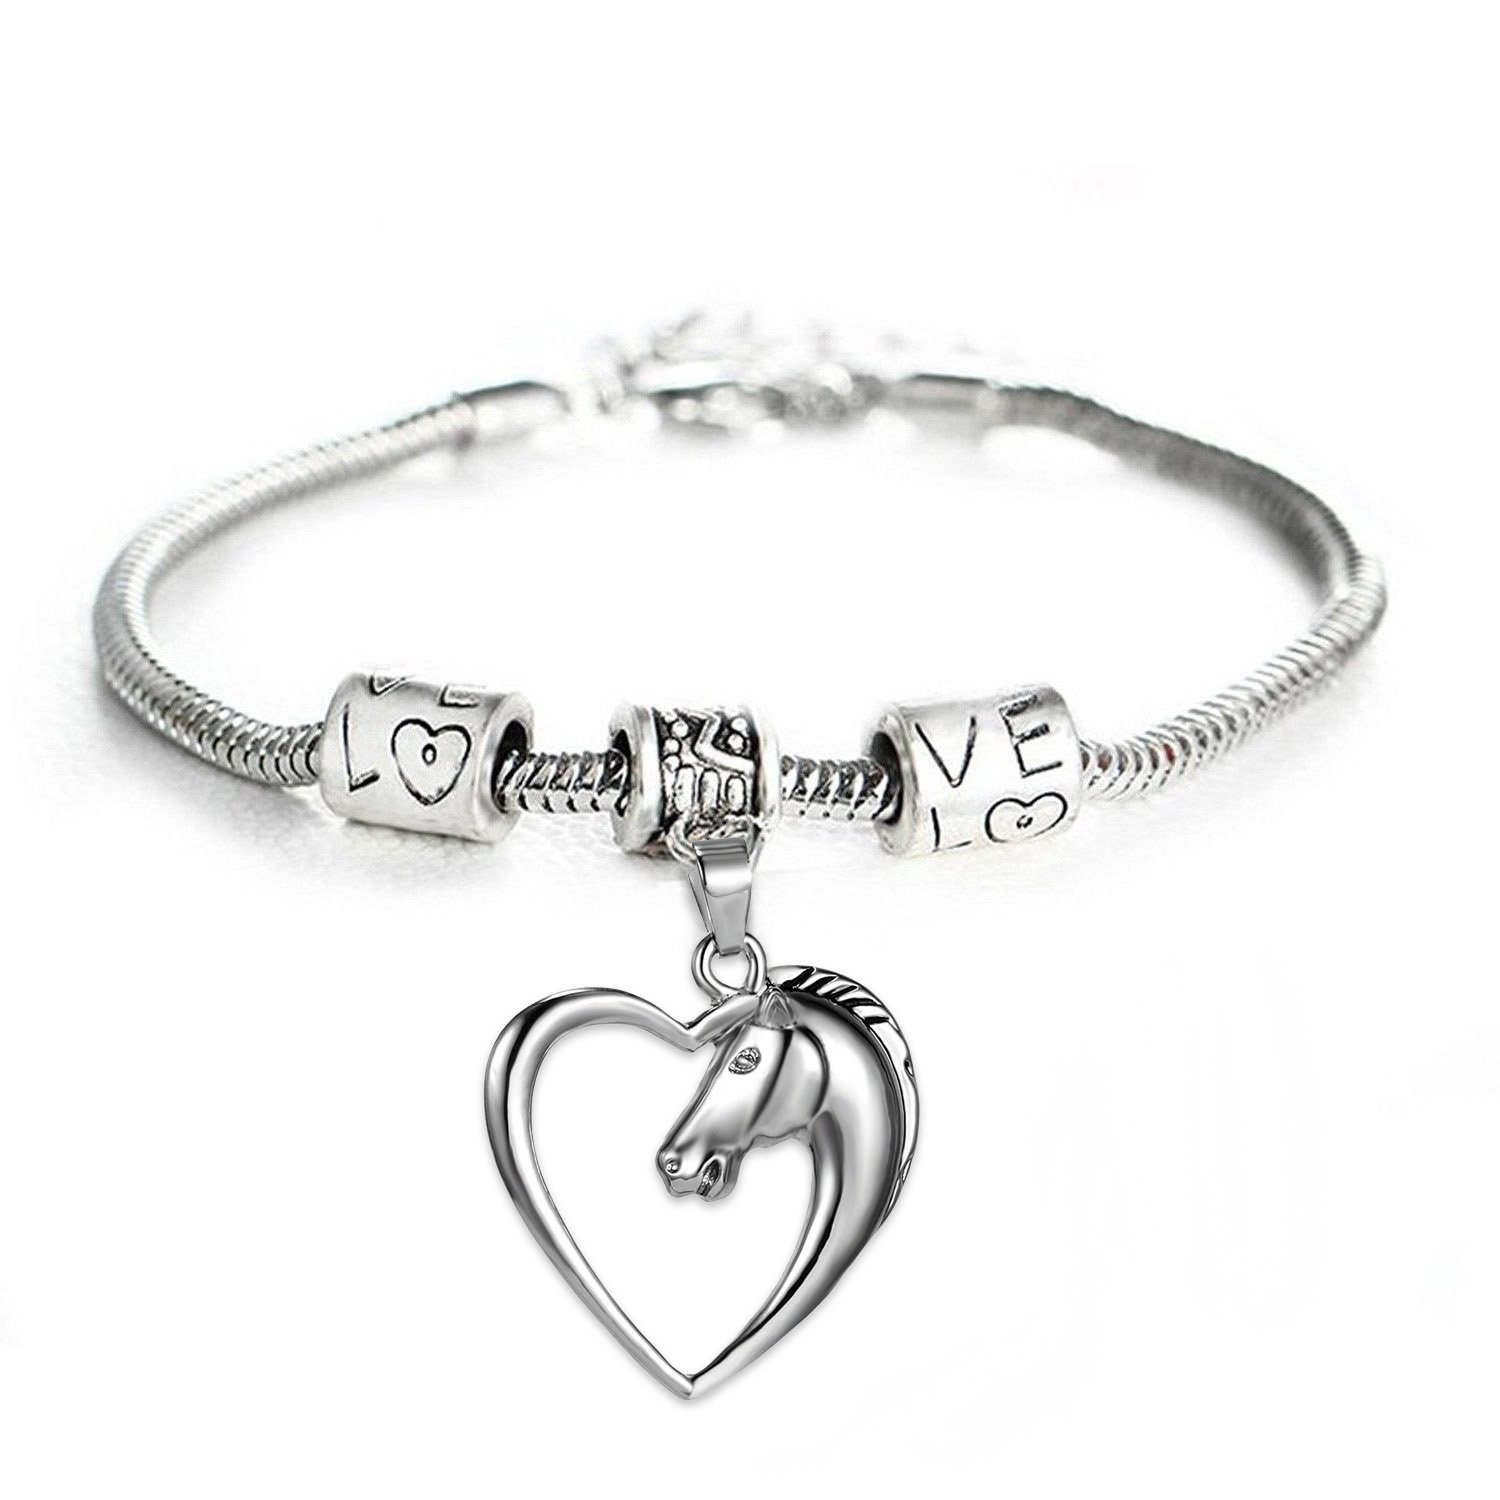 GlobalJewels Heart Horse Bracelet - Best Gift for Mother, Sister, Brother, Friends, Birthdays and Anniversaries